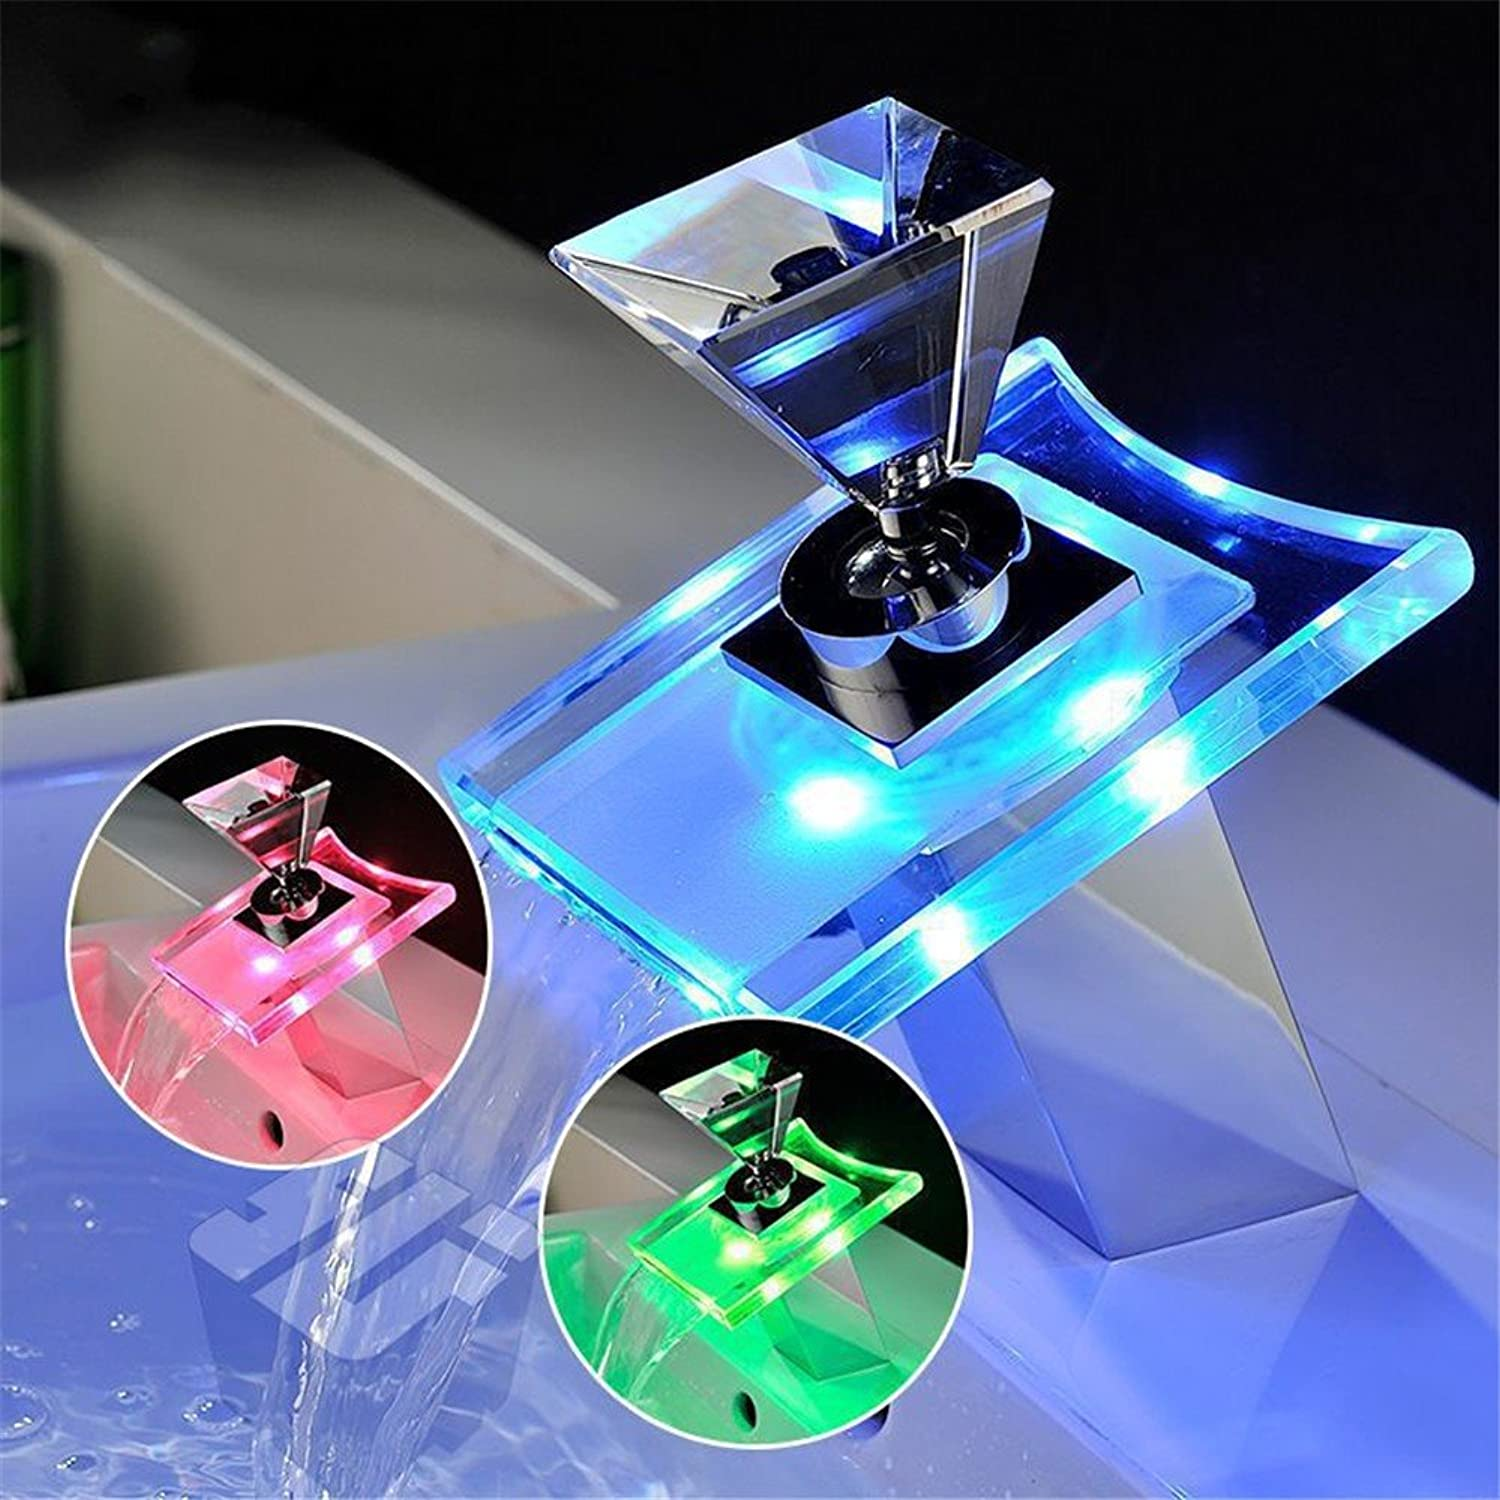 Full copper LED waterfall basin hot water faucet crystal glowing temperature controlled discoloration basin faucet